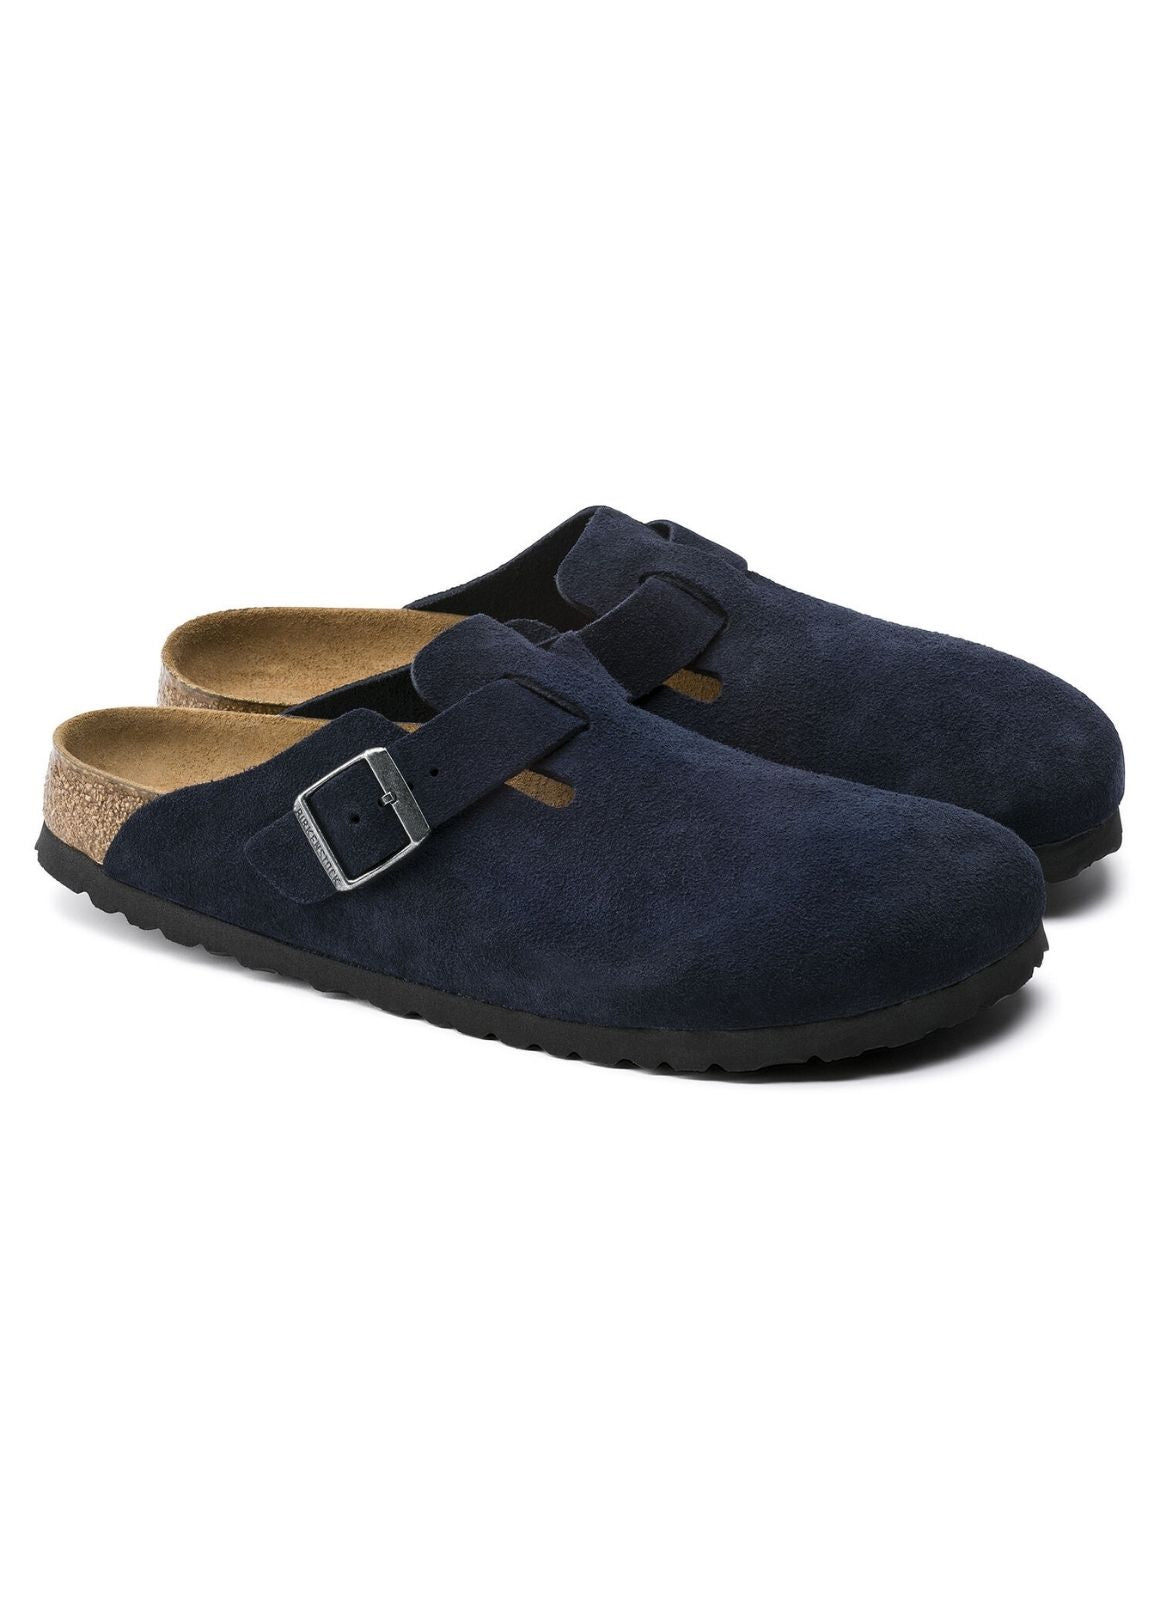 Birkenstock Soft Footbed Boston Clog Suede Leather Night